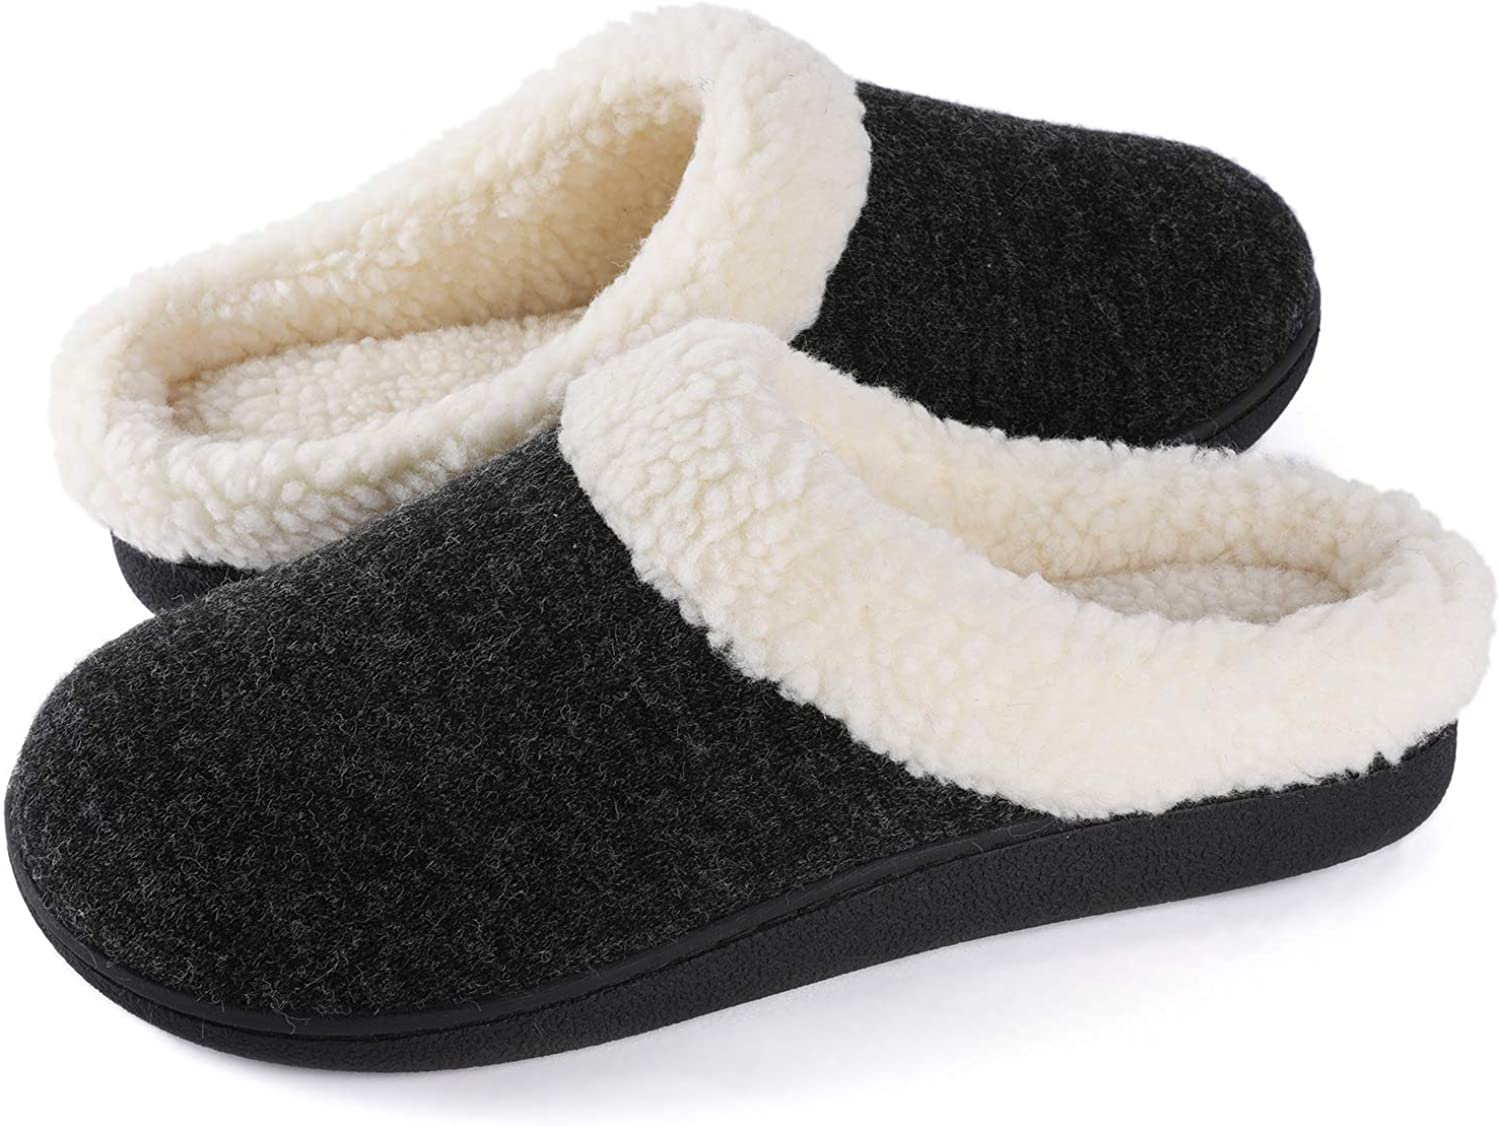 Outdoor Nonslip Rubber Sole Wishcotton Womens Cozy Memory Foam Slippers Fuzzy Wool-Like Plush Fleece Lined House Shoes w//Indoor